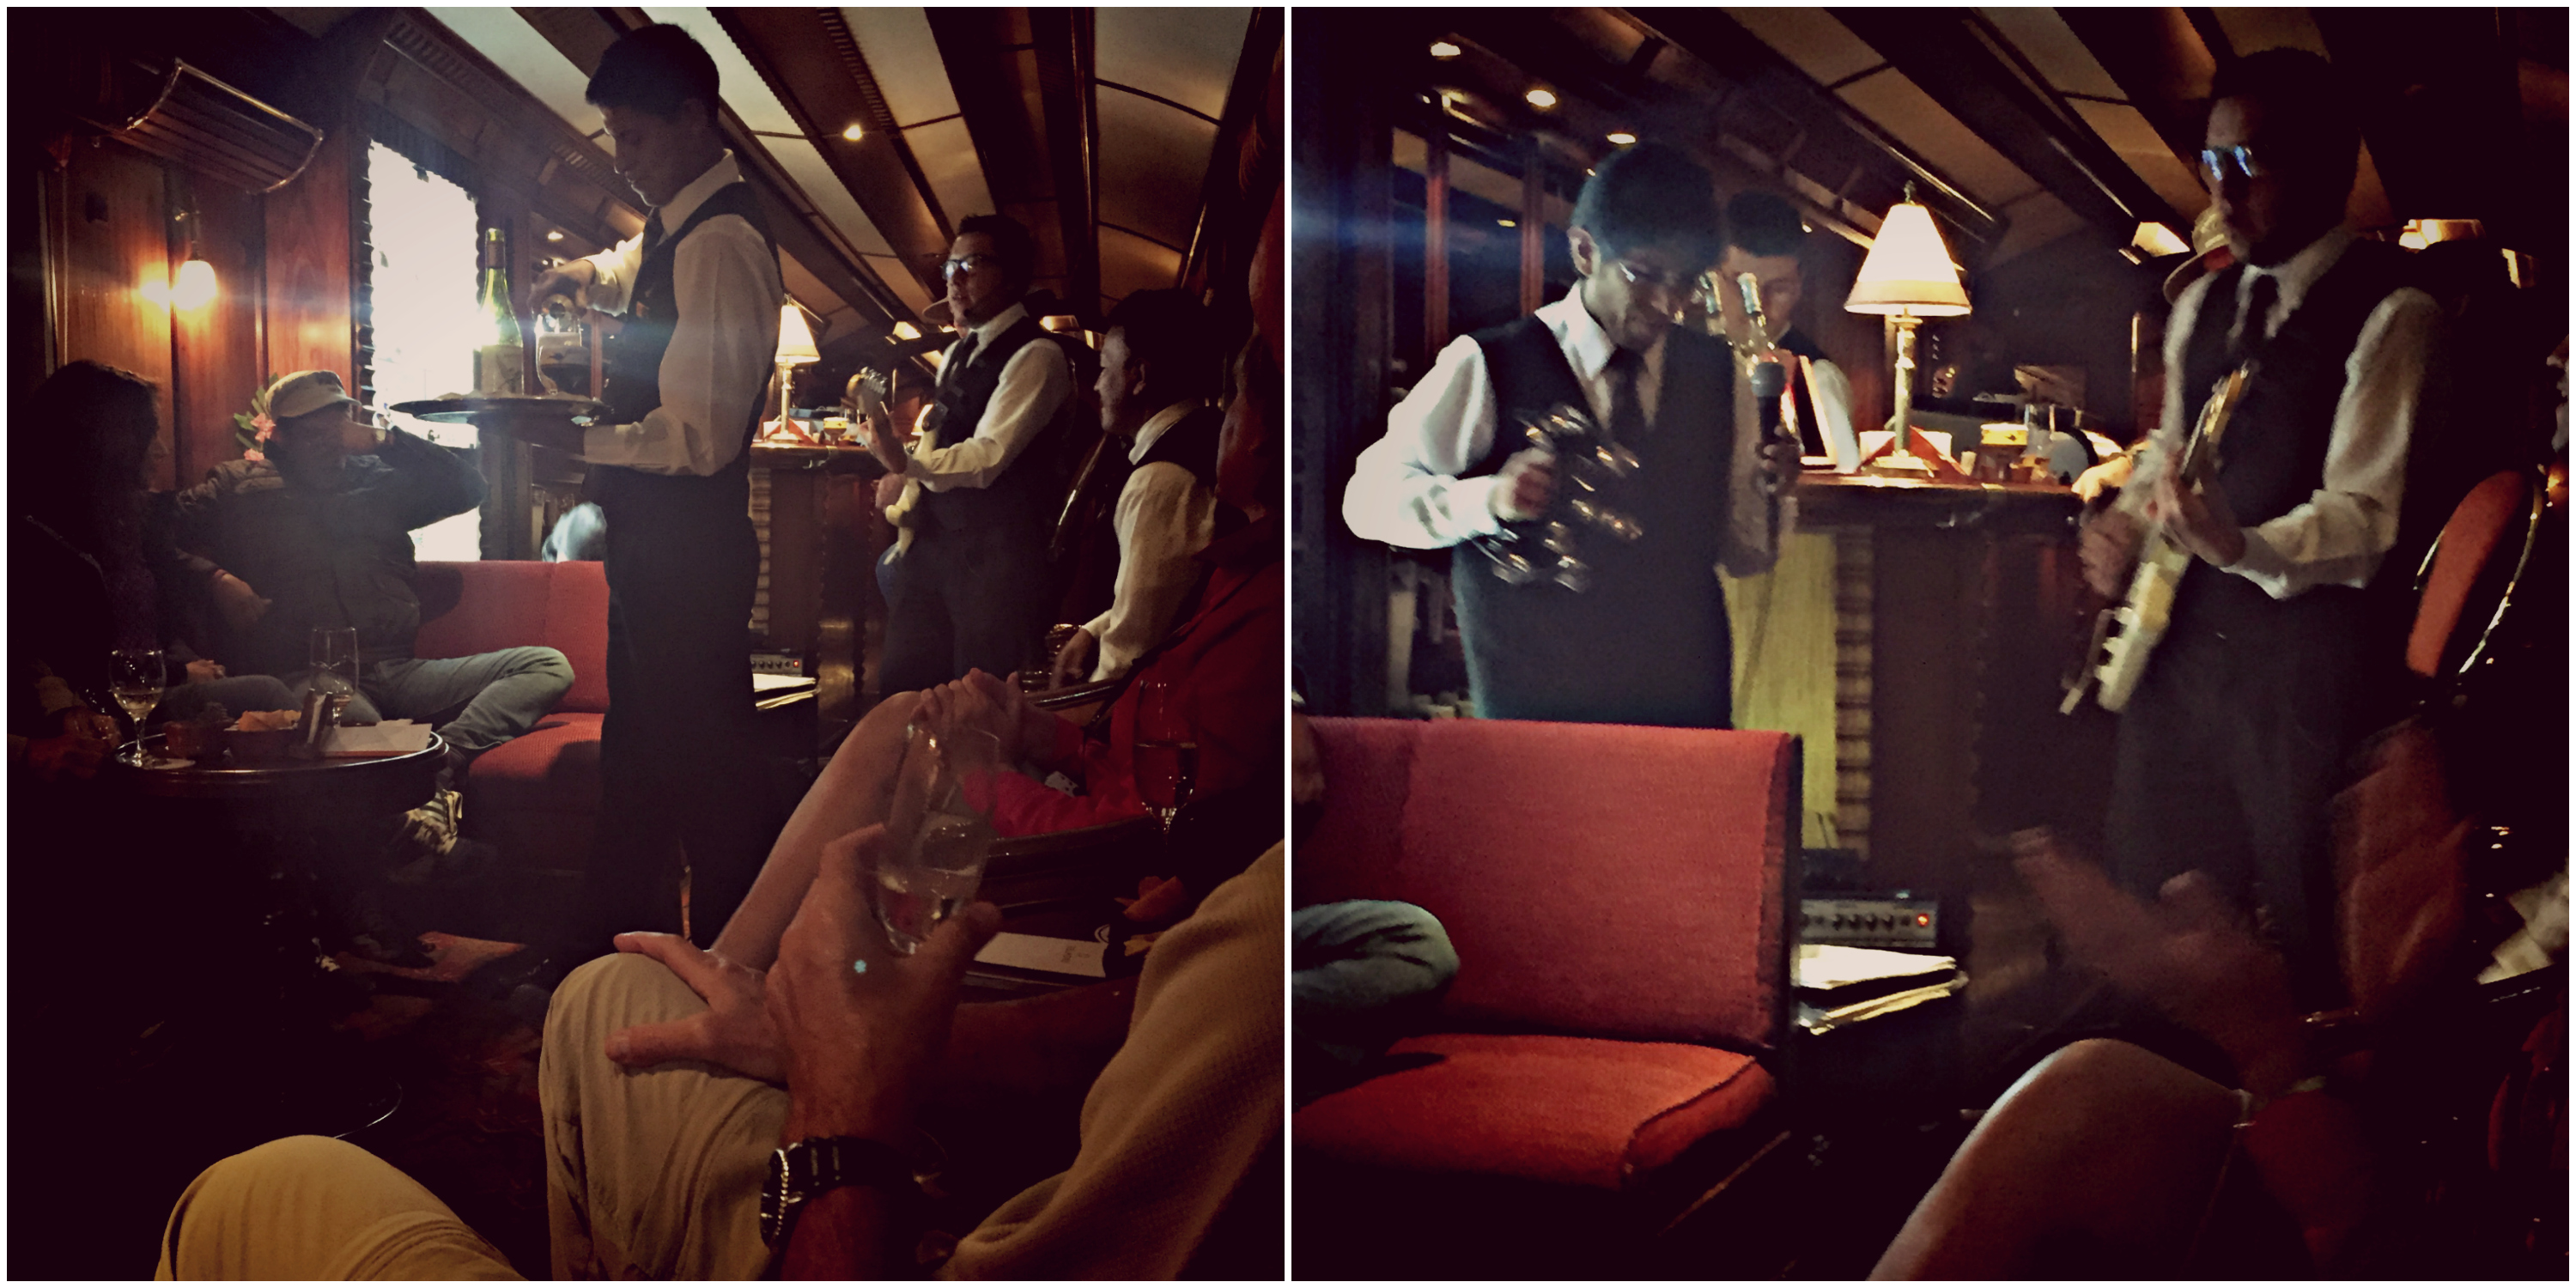 The bar car was lively and fun! Great music, great people!